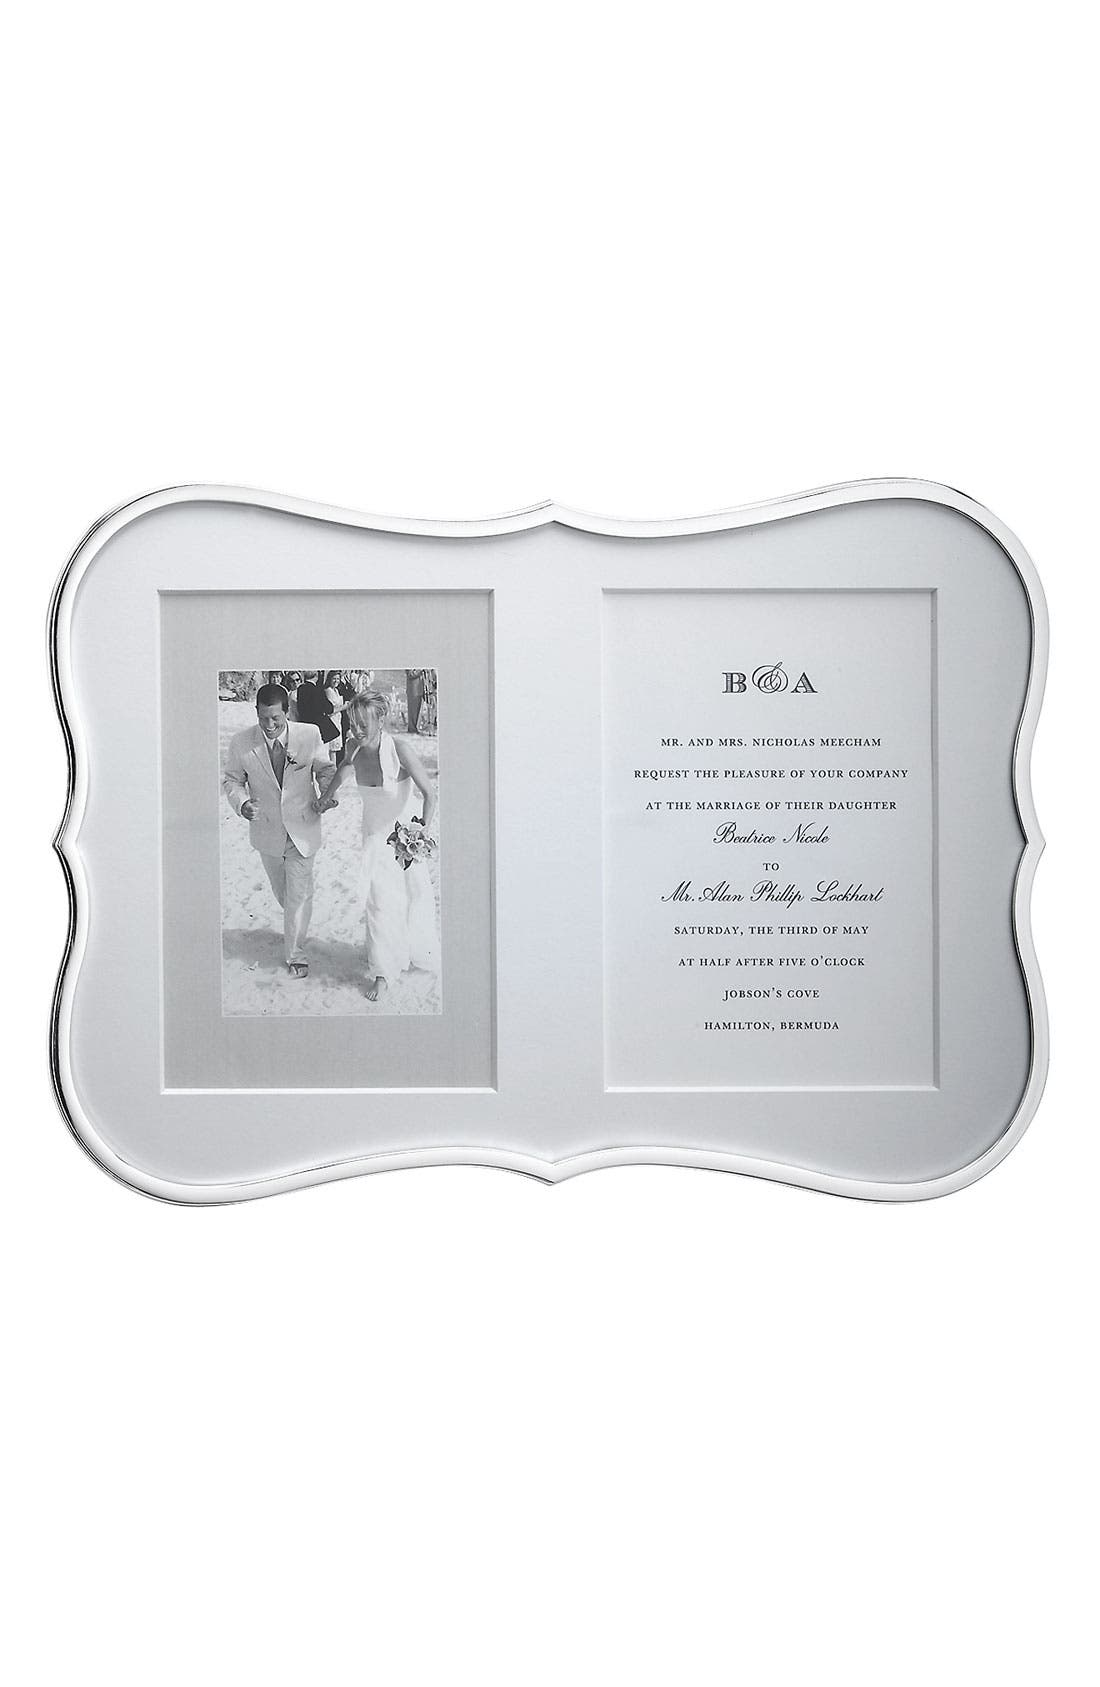 Alternate Image 1 Selected - kate spade new york 'crown point' double invitation frame